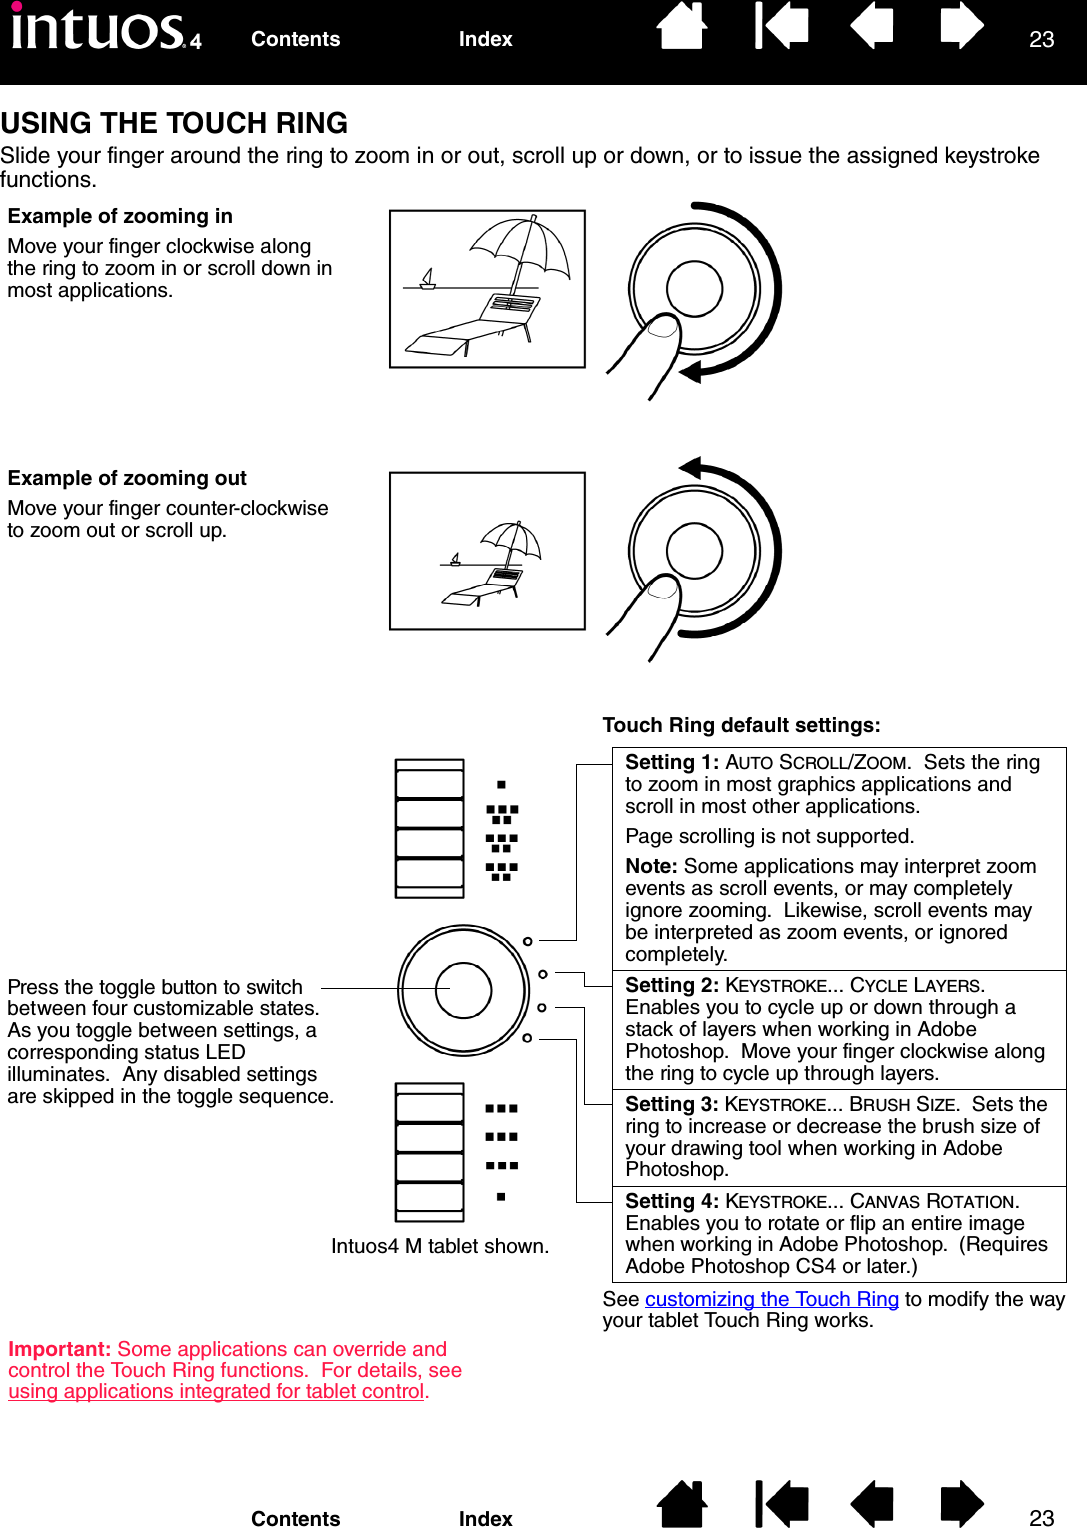 4 Way Switch Is Wikipedia Wrong Manual Guide